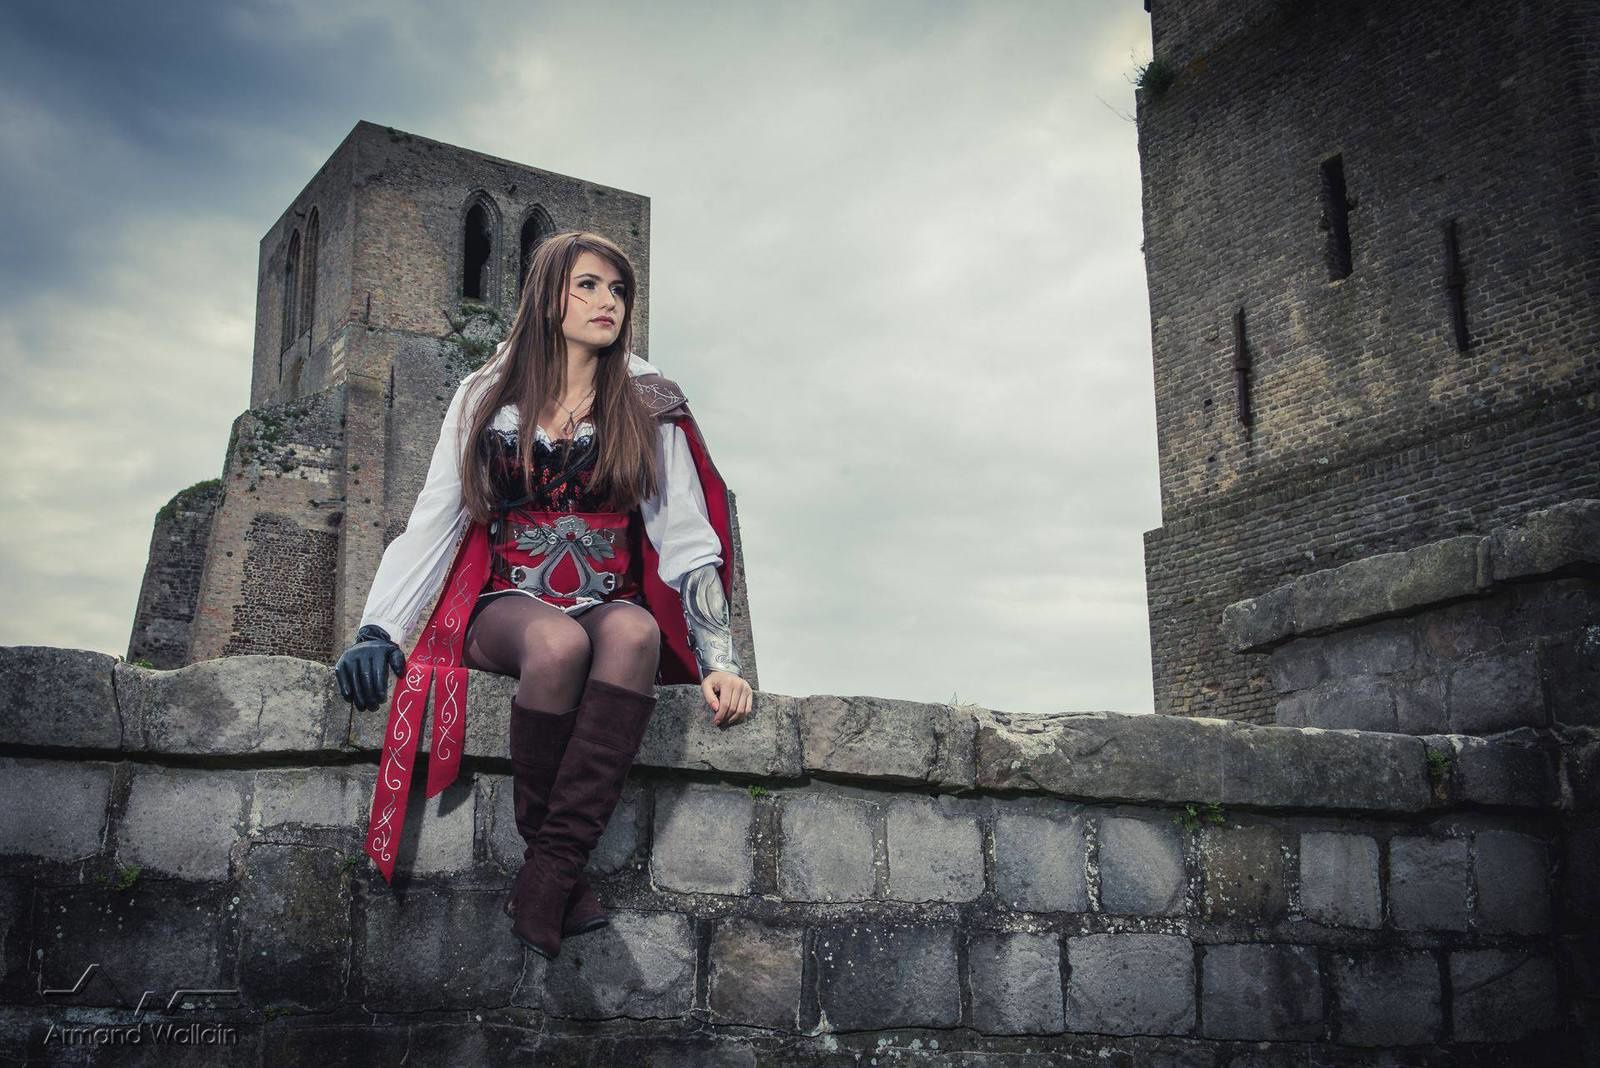 Parle-moi Cosplay #141,5 : Pep's Cosplay